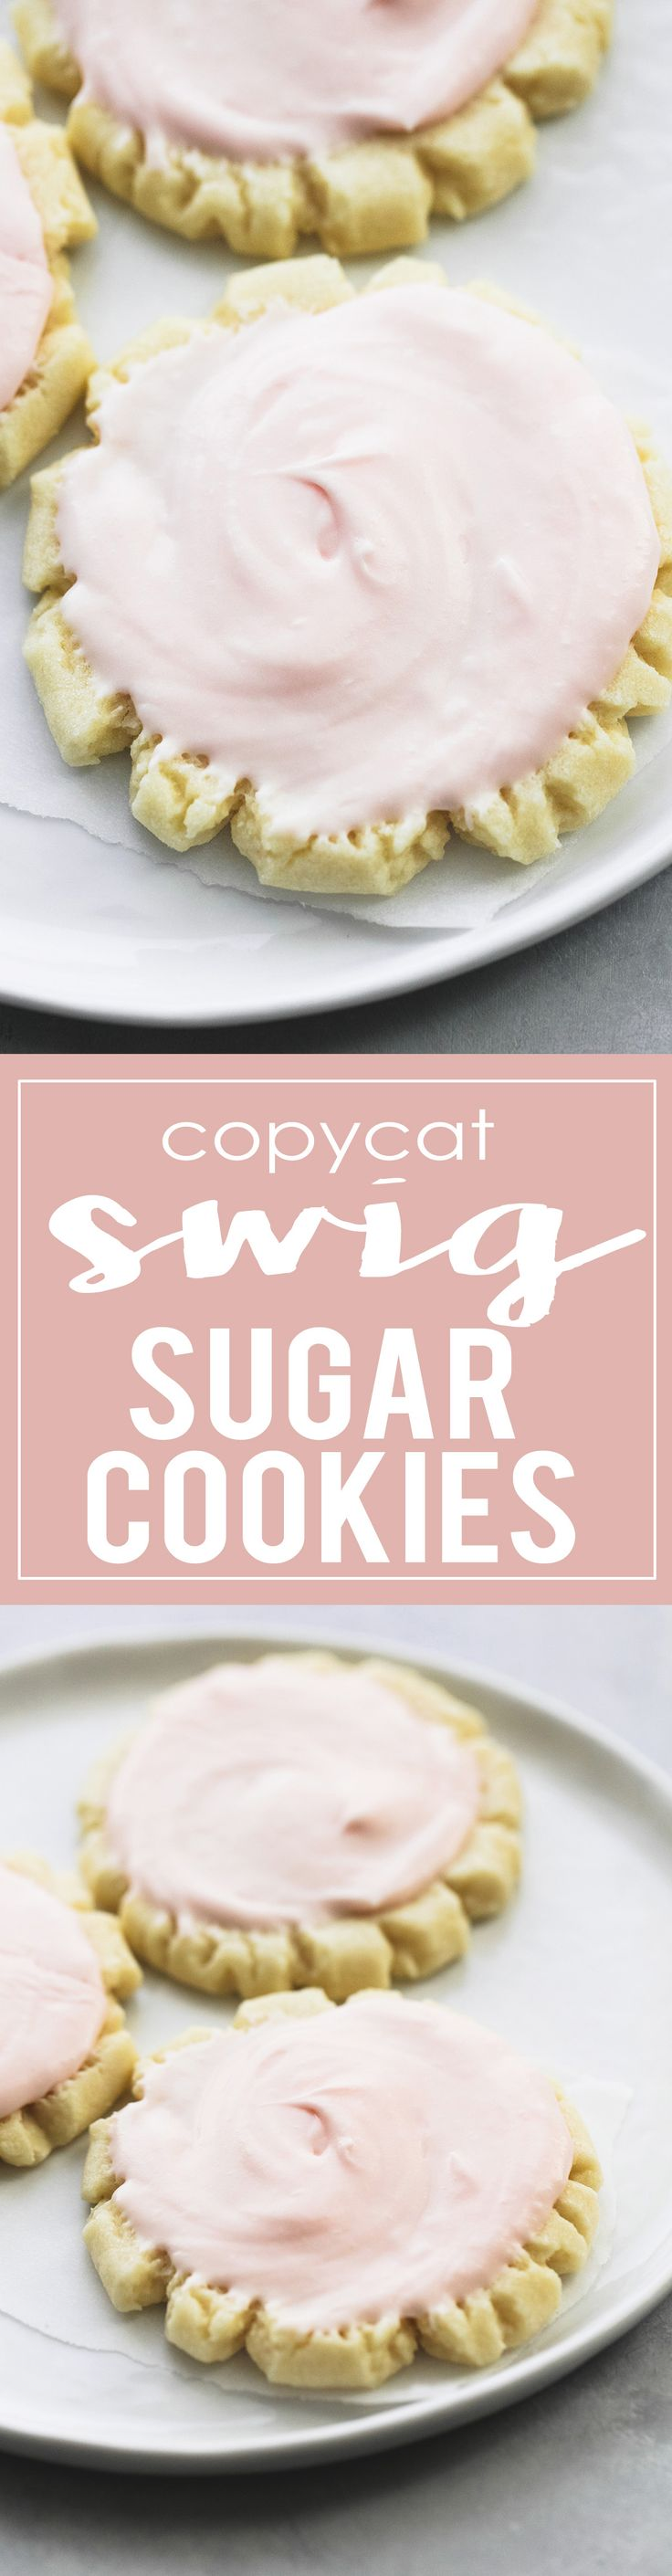 Copycat Swig Sugar Cookies - these taste just like the real deal! They are famous for a good reason, the BEST sugar cookies you will EVER taste! | lecremedelacrumb.com